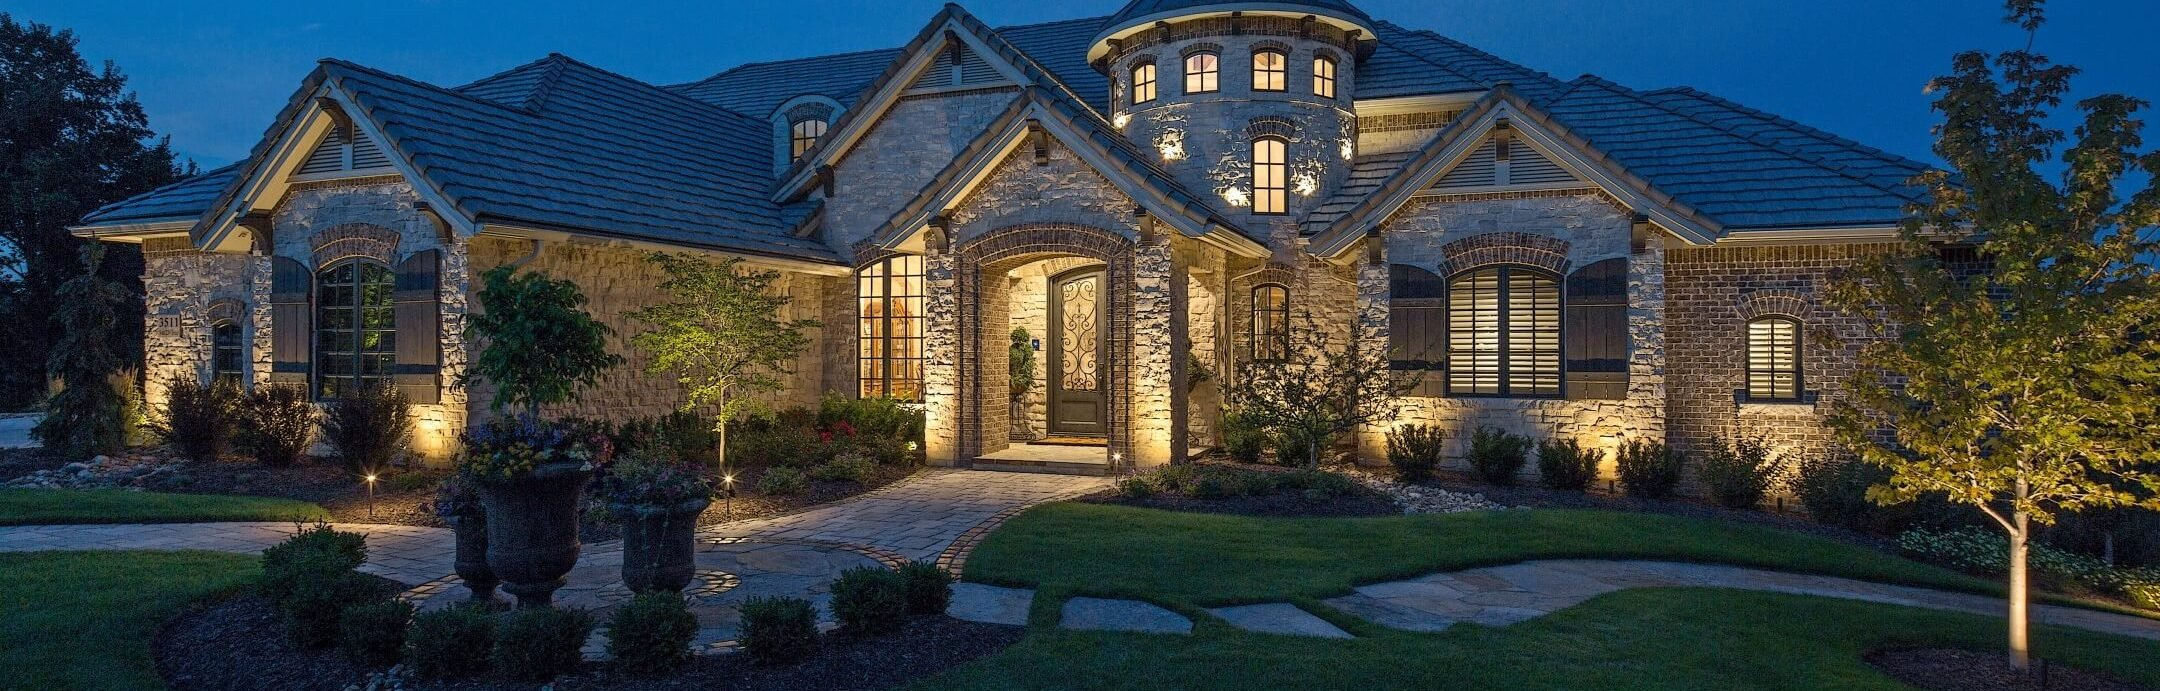 Landscape Lighting Testimonals